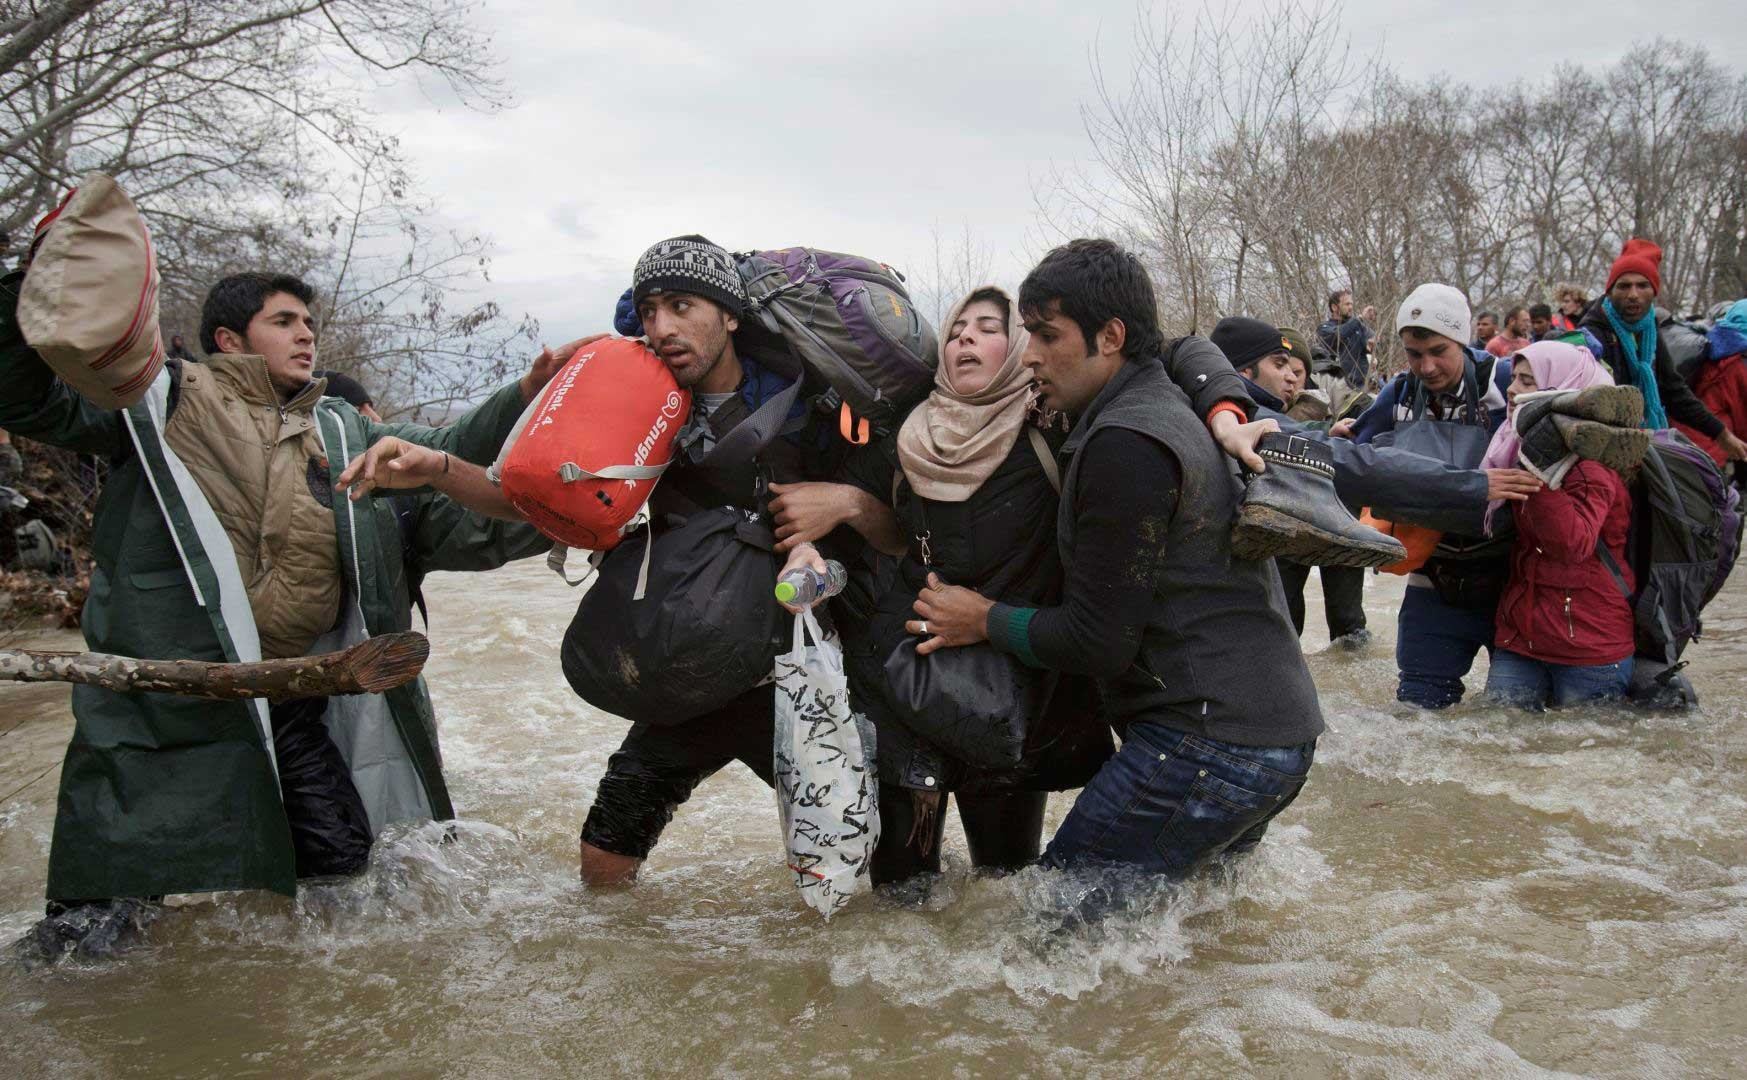 A woman is supported by two men while crossing a river, as refugees attempt to reach Macedonia on a route that would bypass the border fence, on March 14, 2016.